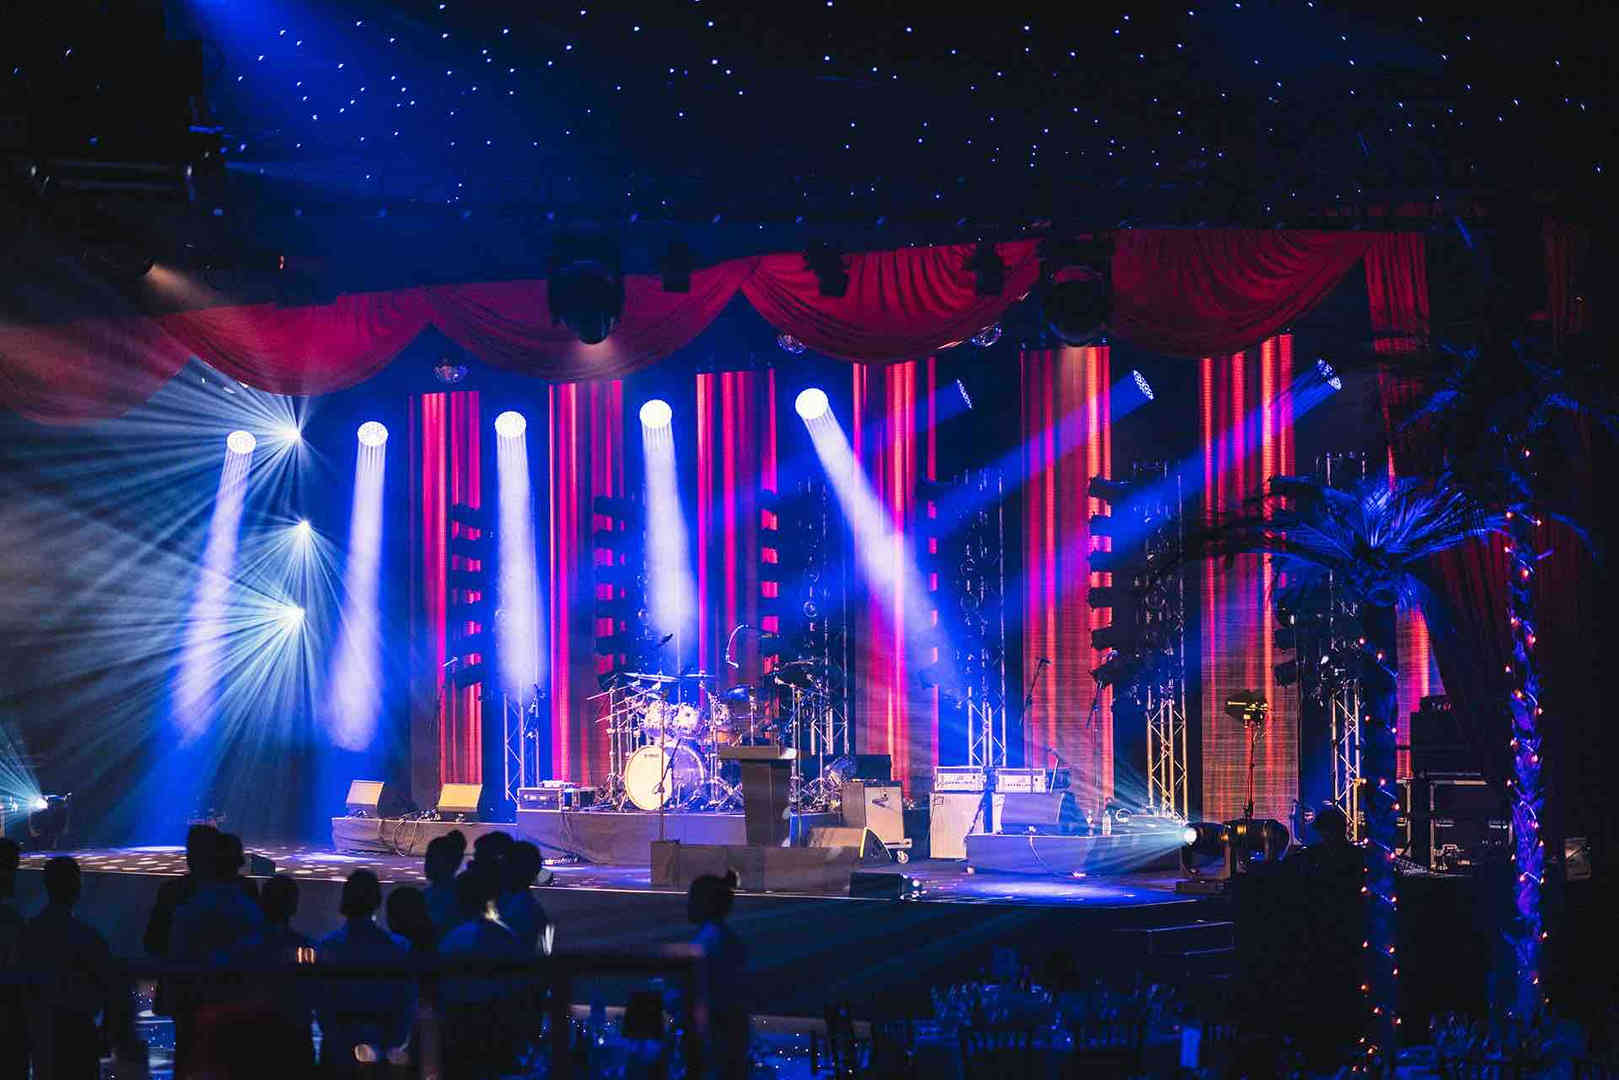 Awardshow Lighting Equipment London AV Event Services Supplied